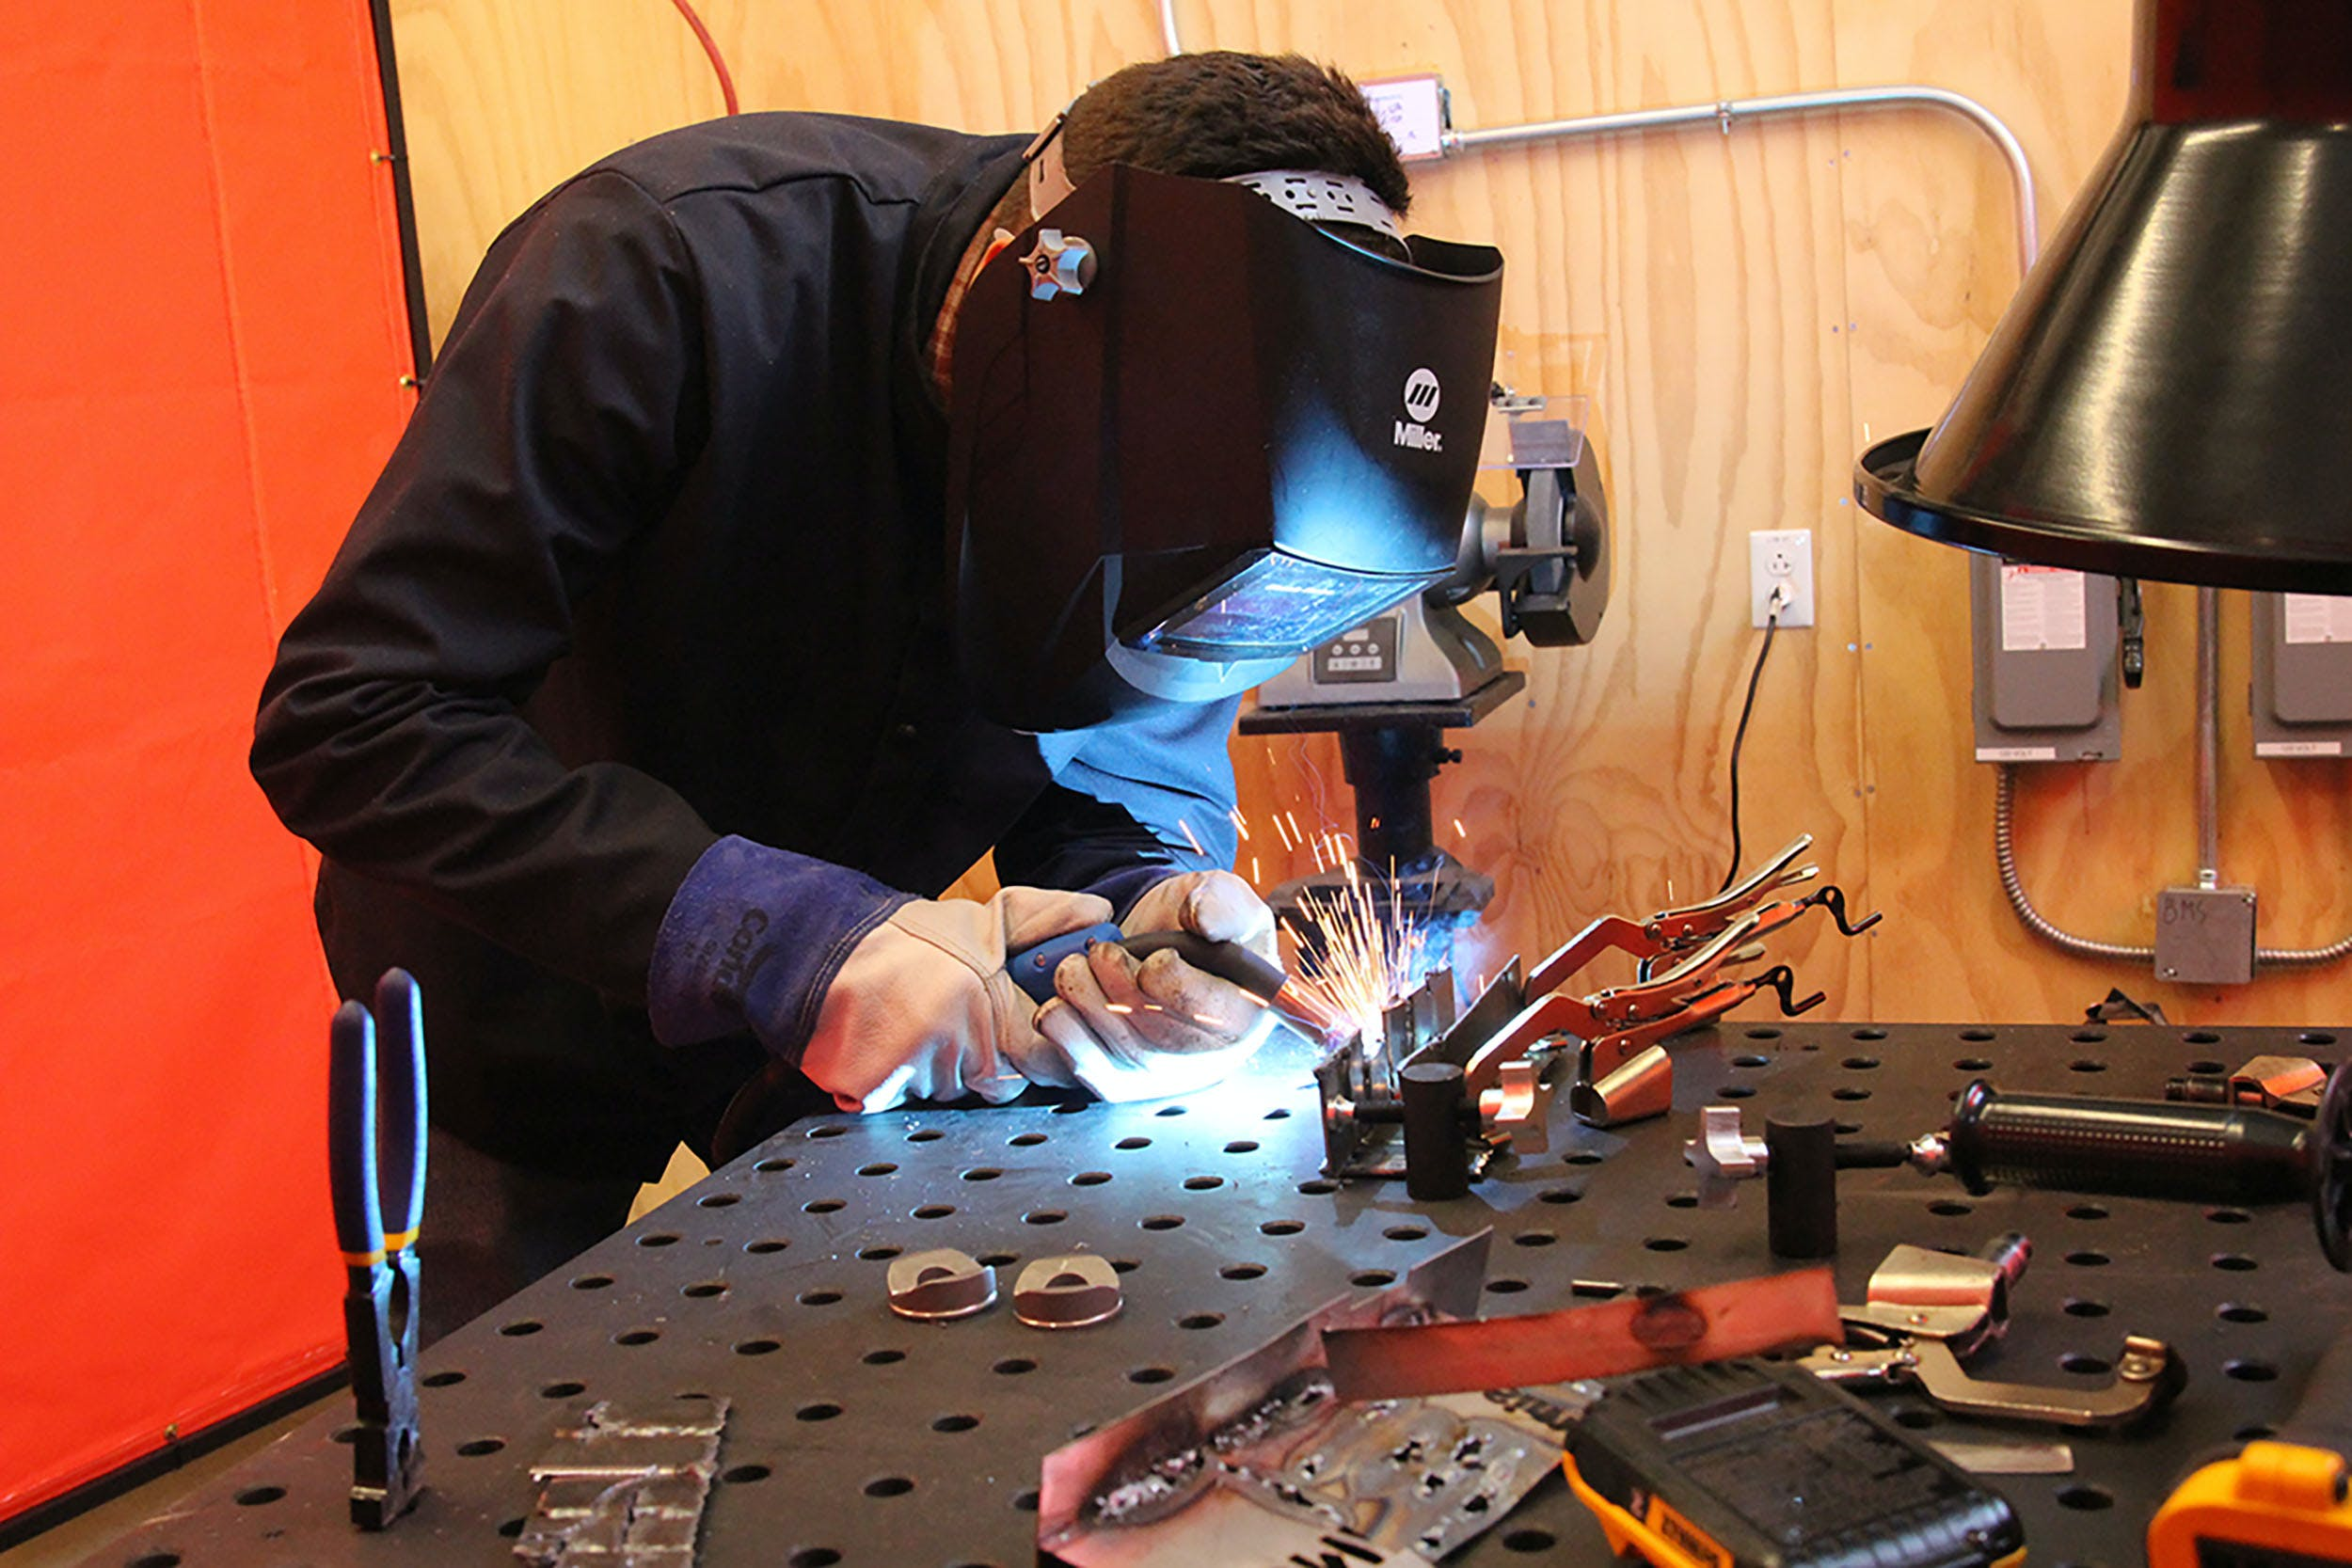 Person with welding mask welding metal